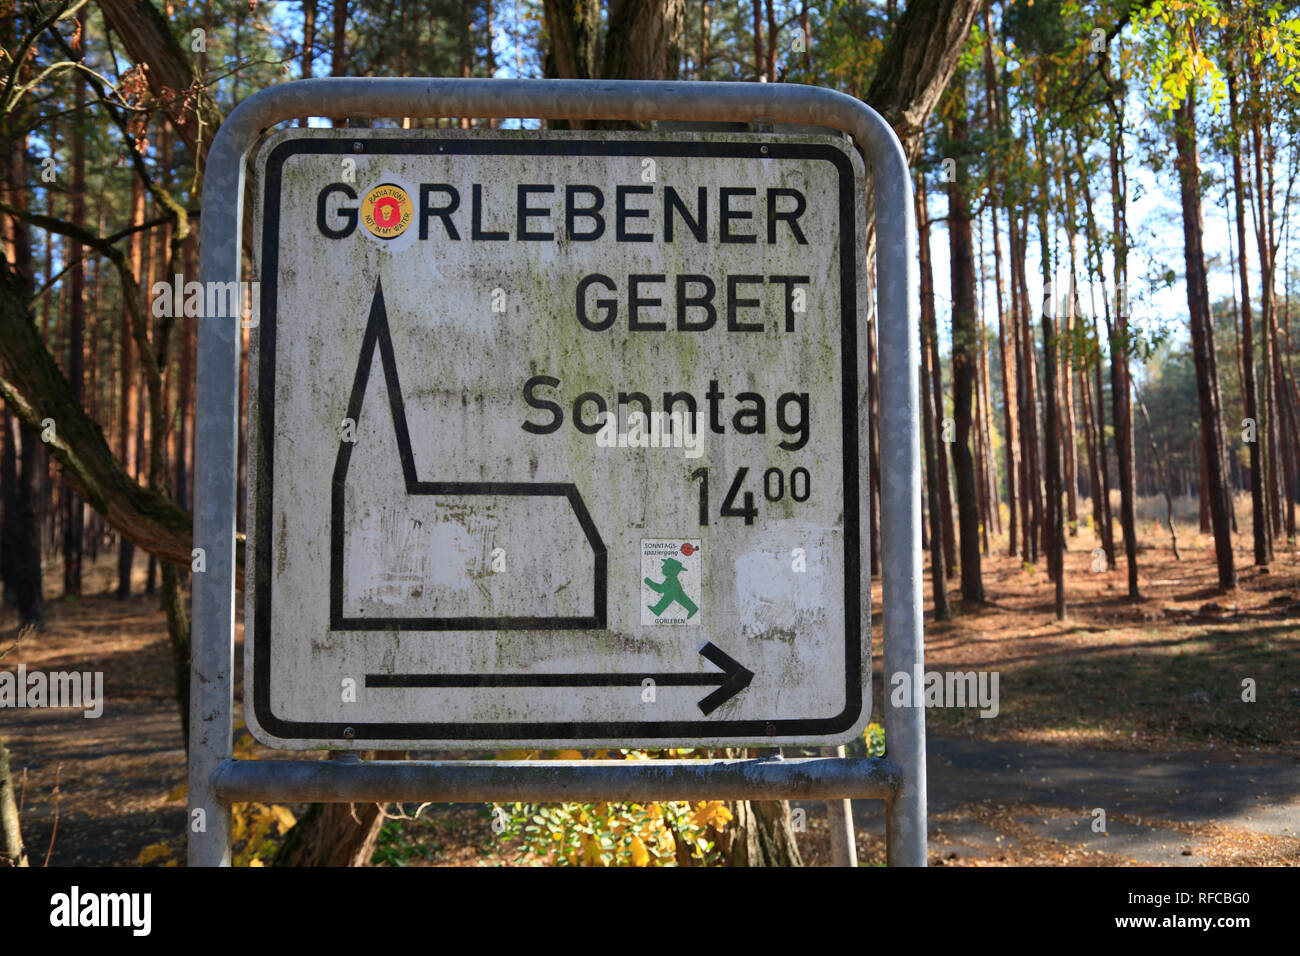 Gorlebener Gebet: Anti-nuclear protest at the nuclear interim storage facility in Gorleben, Wendland, Lower Saxony, Germany, Europe - Stock Image